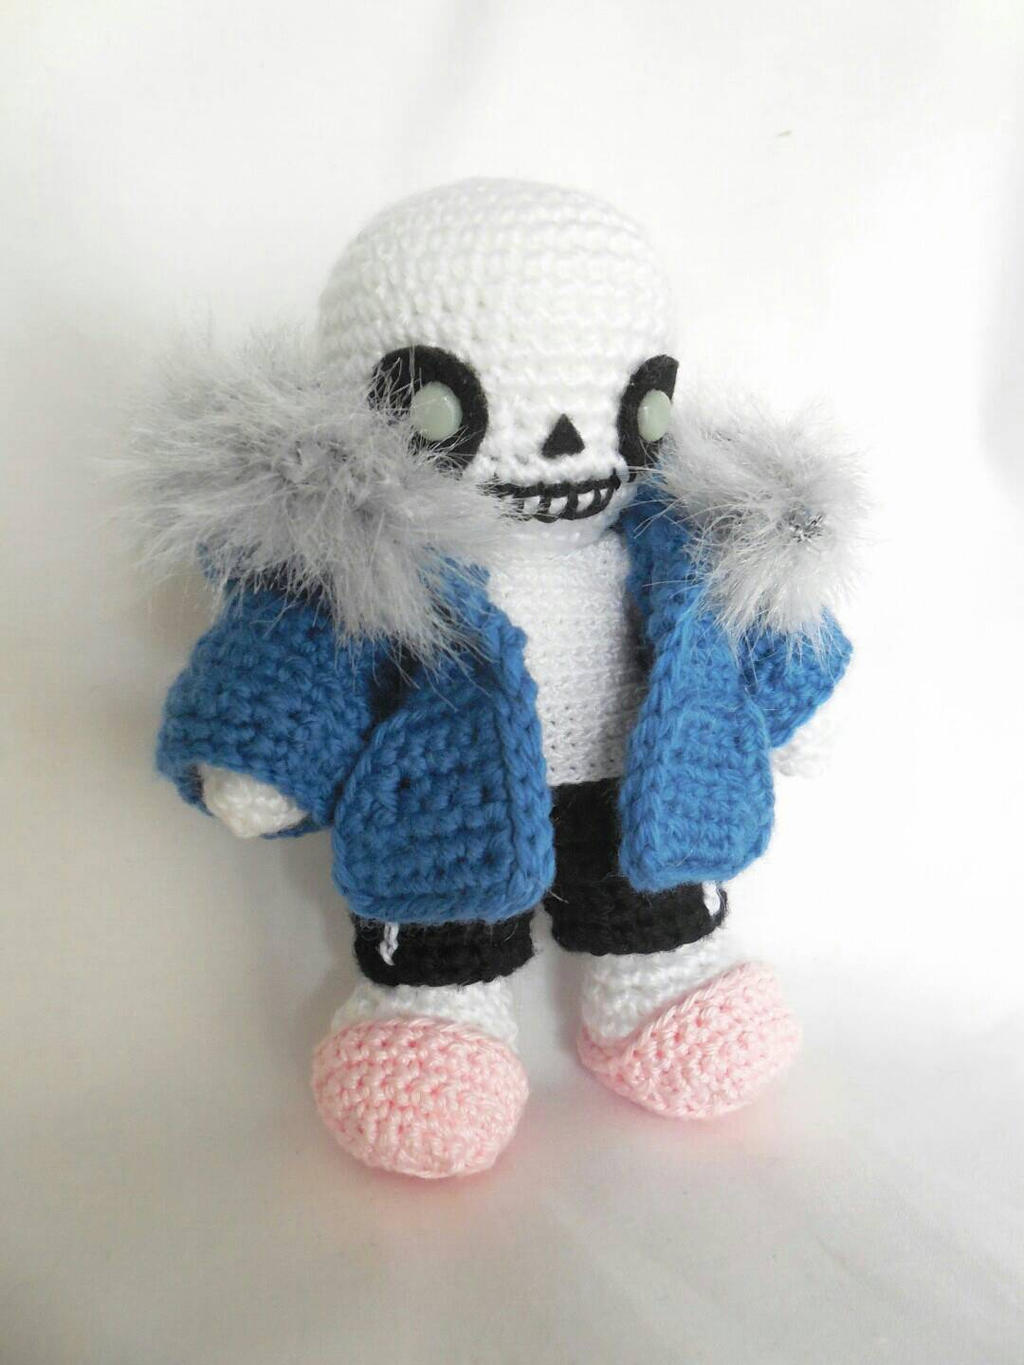 sans miniplush for craftyallie by MasterPlanner on DeviantArt